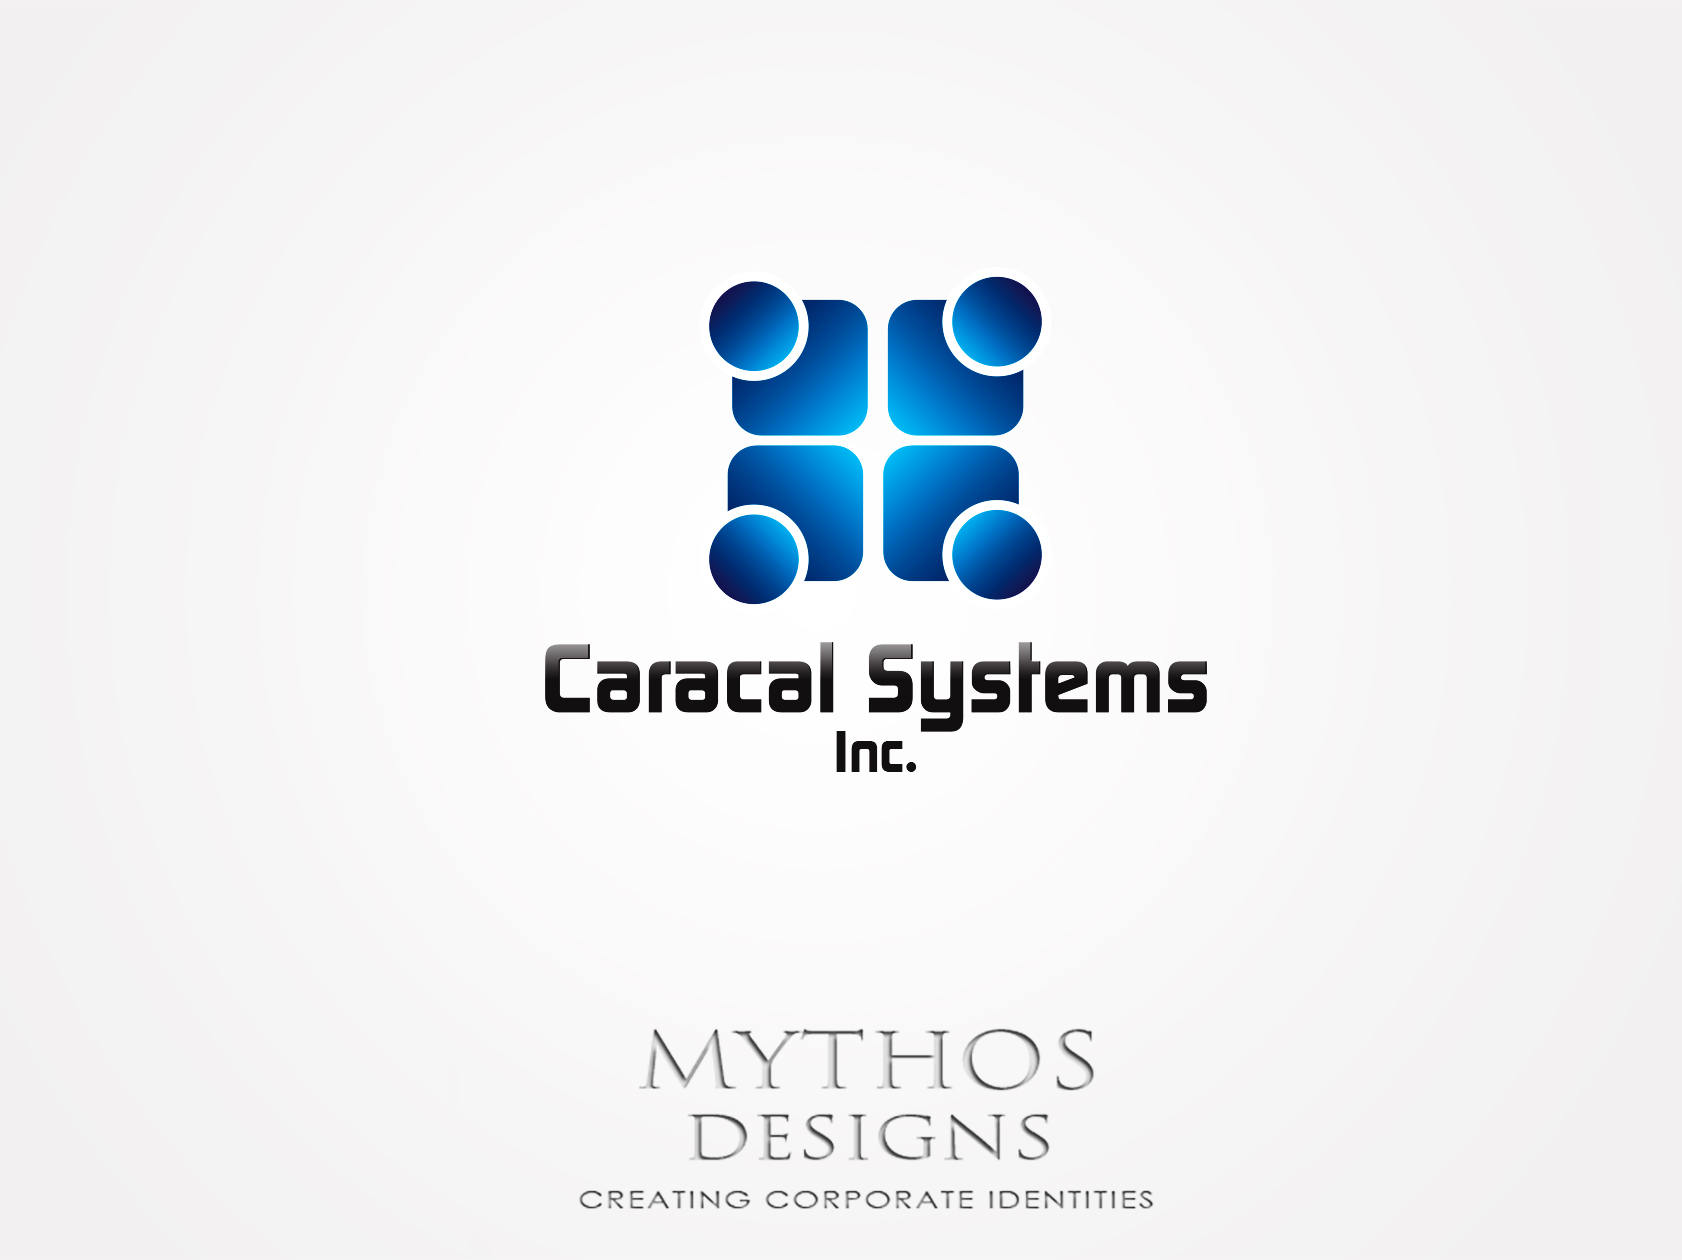 Logo Design by Mythos Designs - Entry No. 107 in the Logo Design Contest Inspiring Logo Design for Caracal Systems Inc..